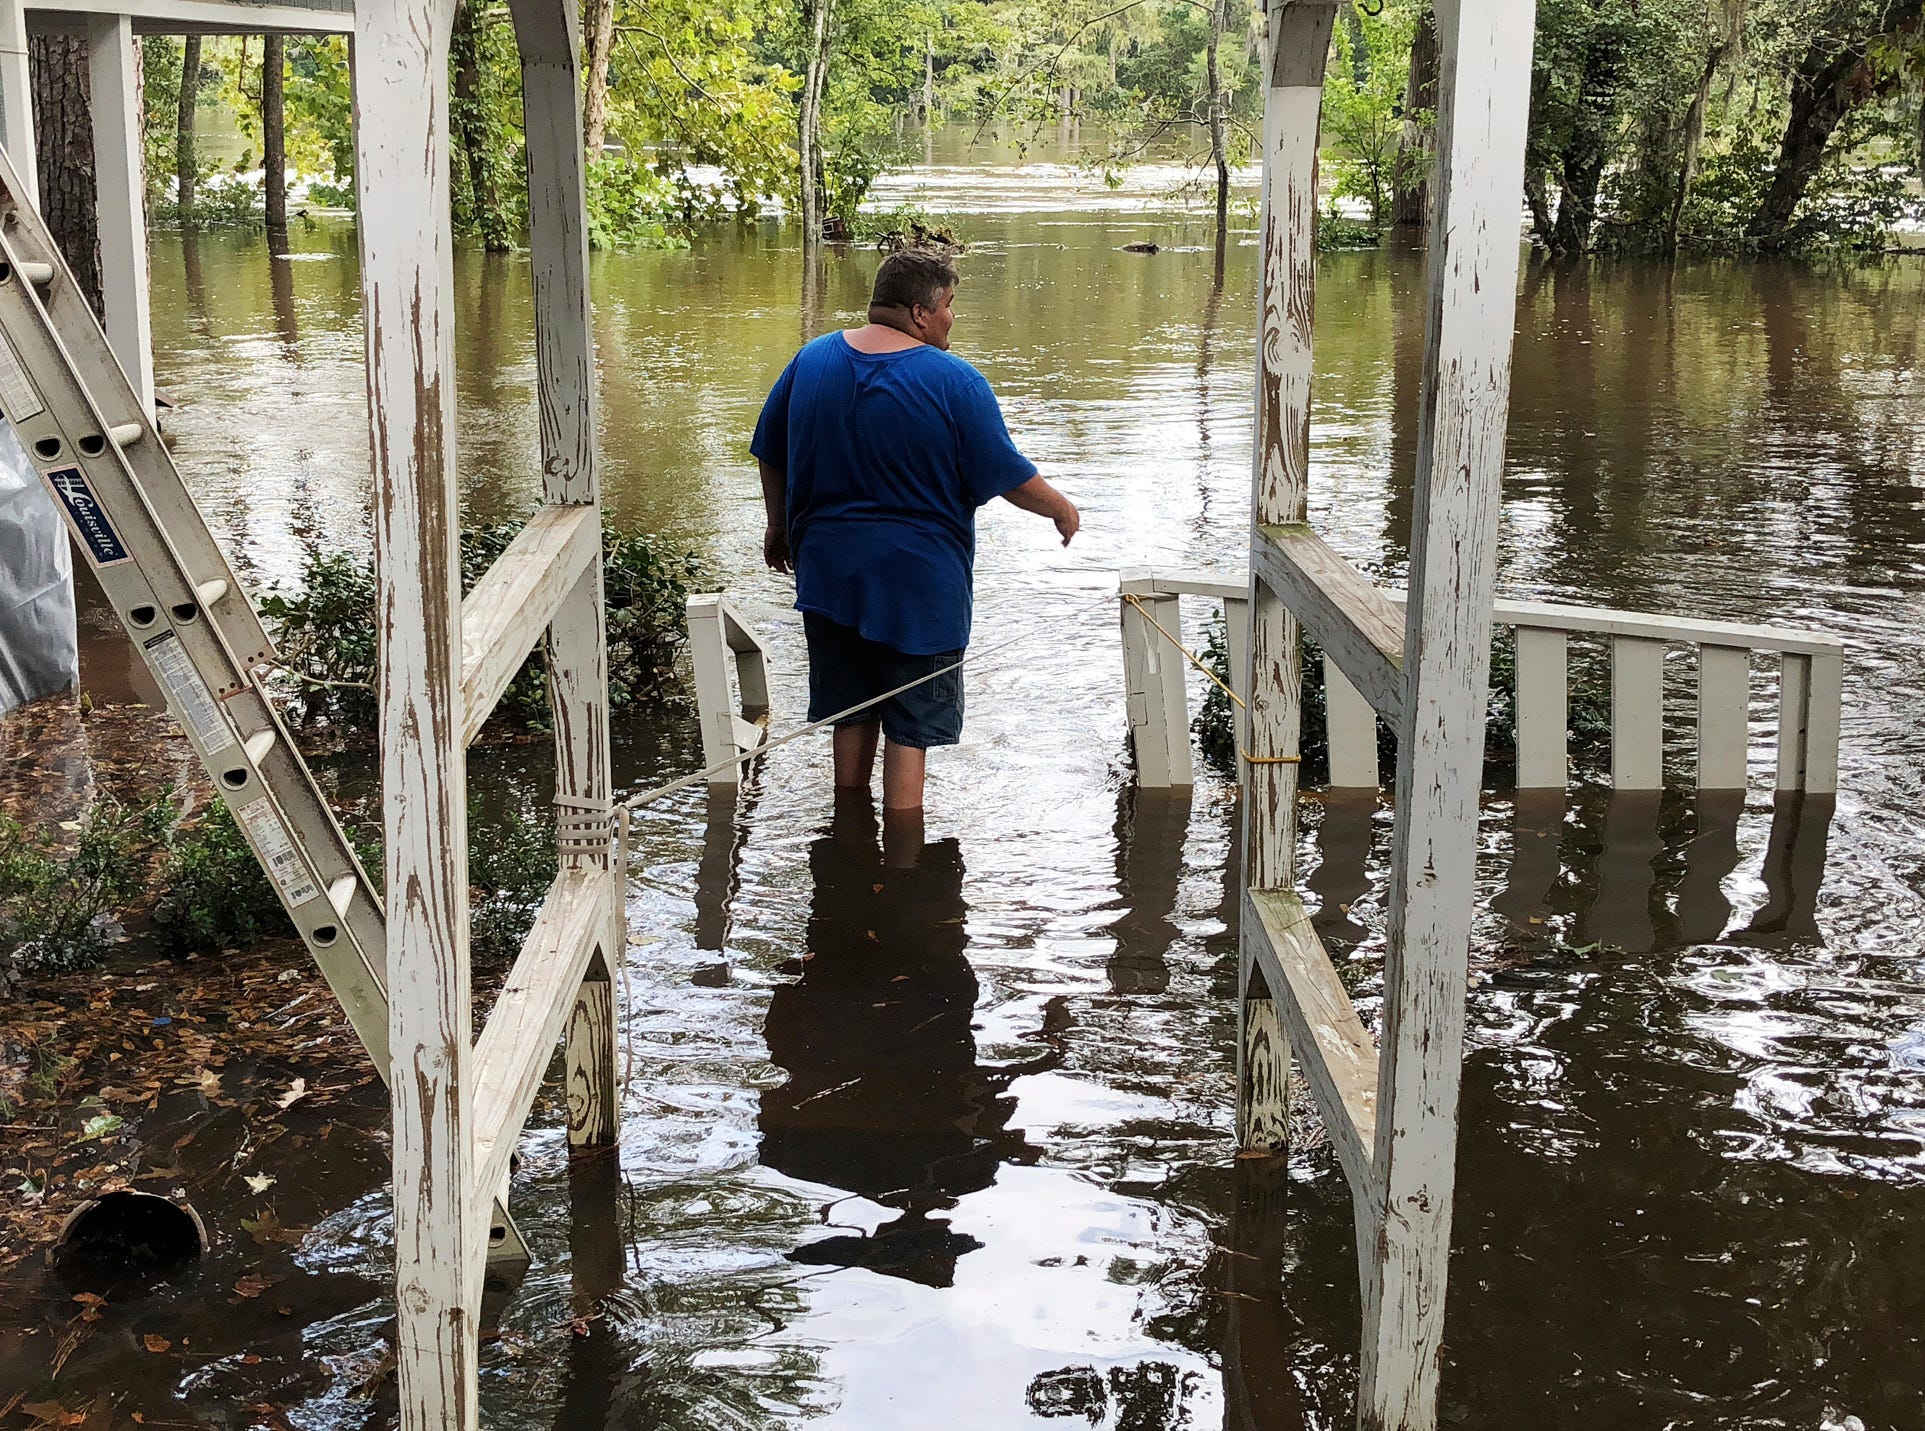 Shawn Lowrimore, Pastor Willie Lowrimore of The Fellowship With Jesus Ministries', son, wades into water near the church in Yauhannah, S.C., on Monday, Sept. 24, 2018. The church is on the bank of the Waccamaw River which has already risen above its record crest and is expected to keep rising for several days, forcing thousands of evacuations in the aftermath of Hurricane Florence.